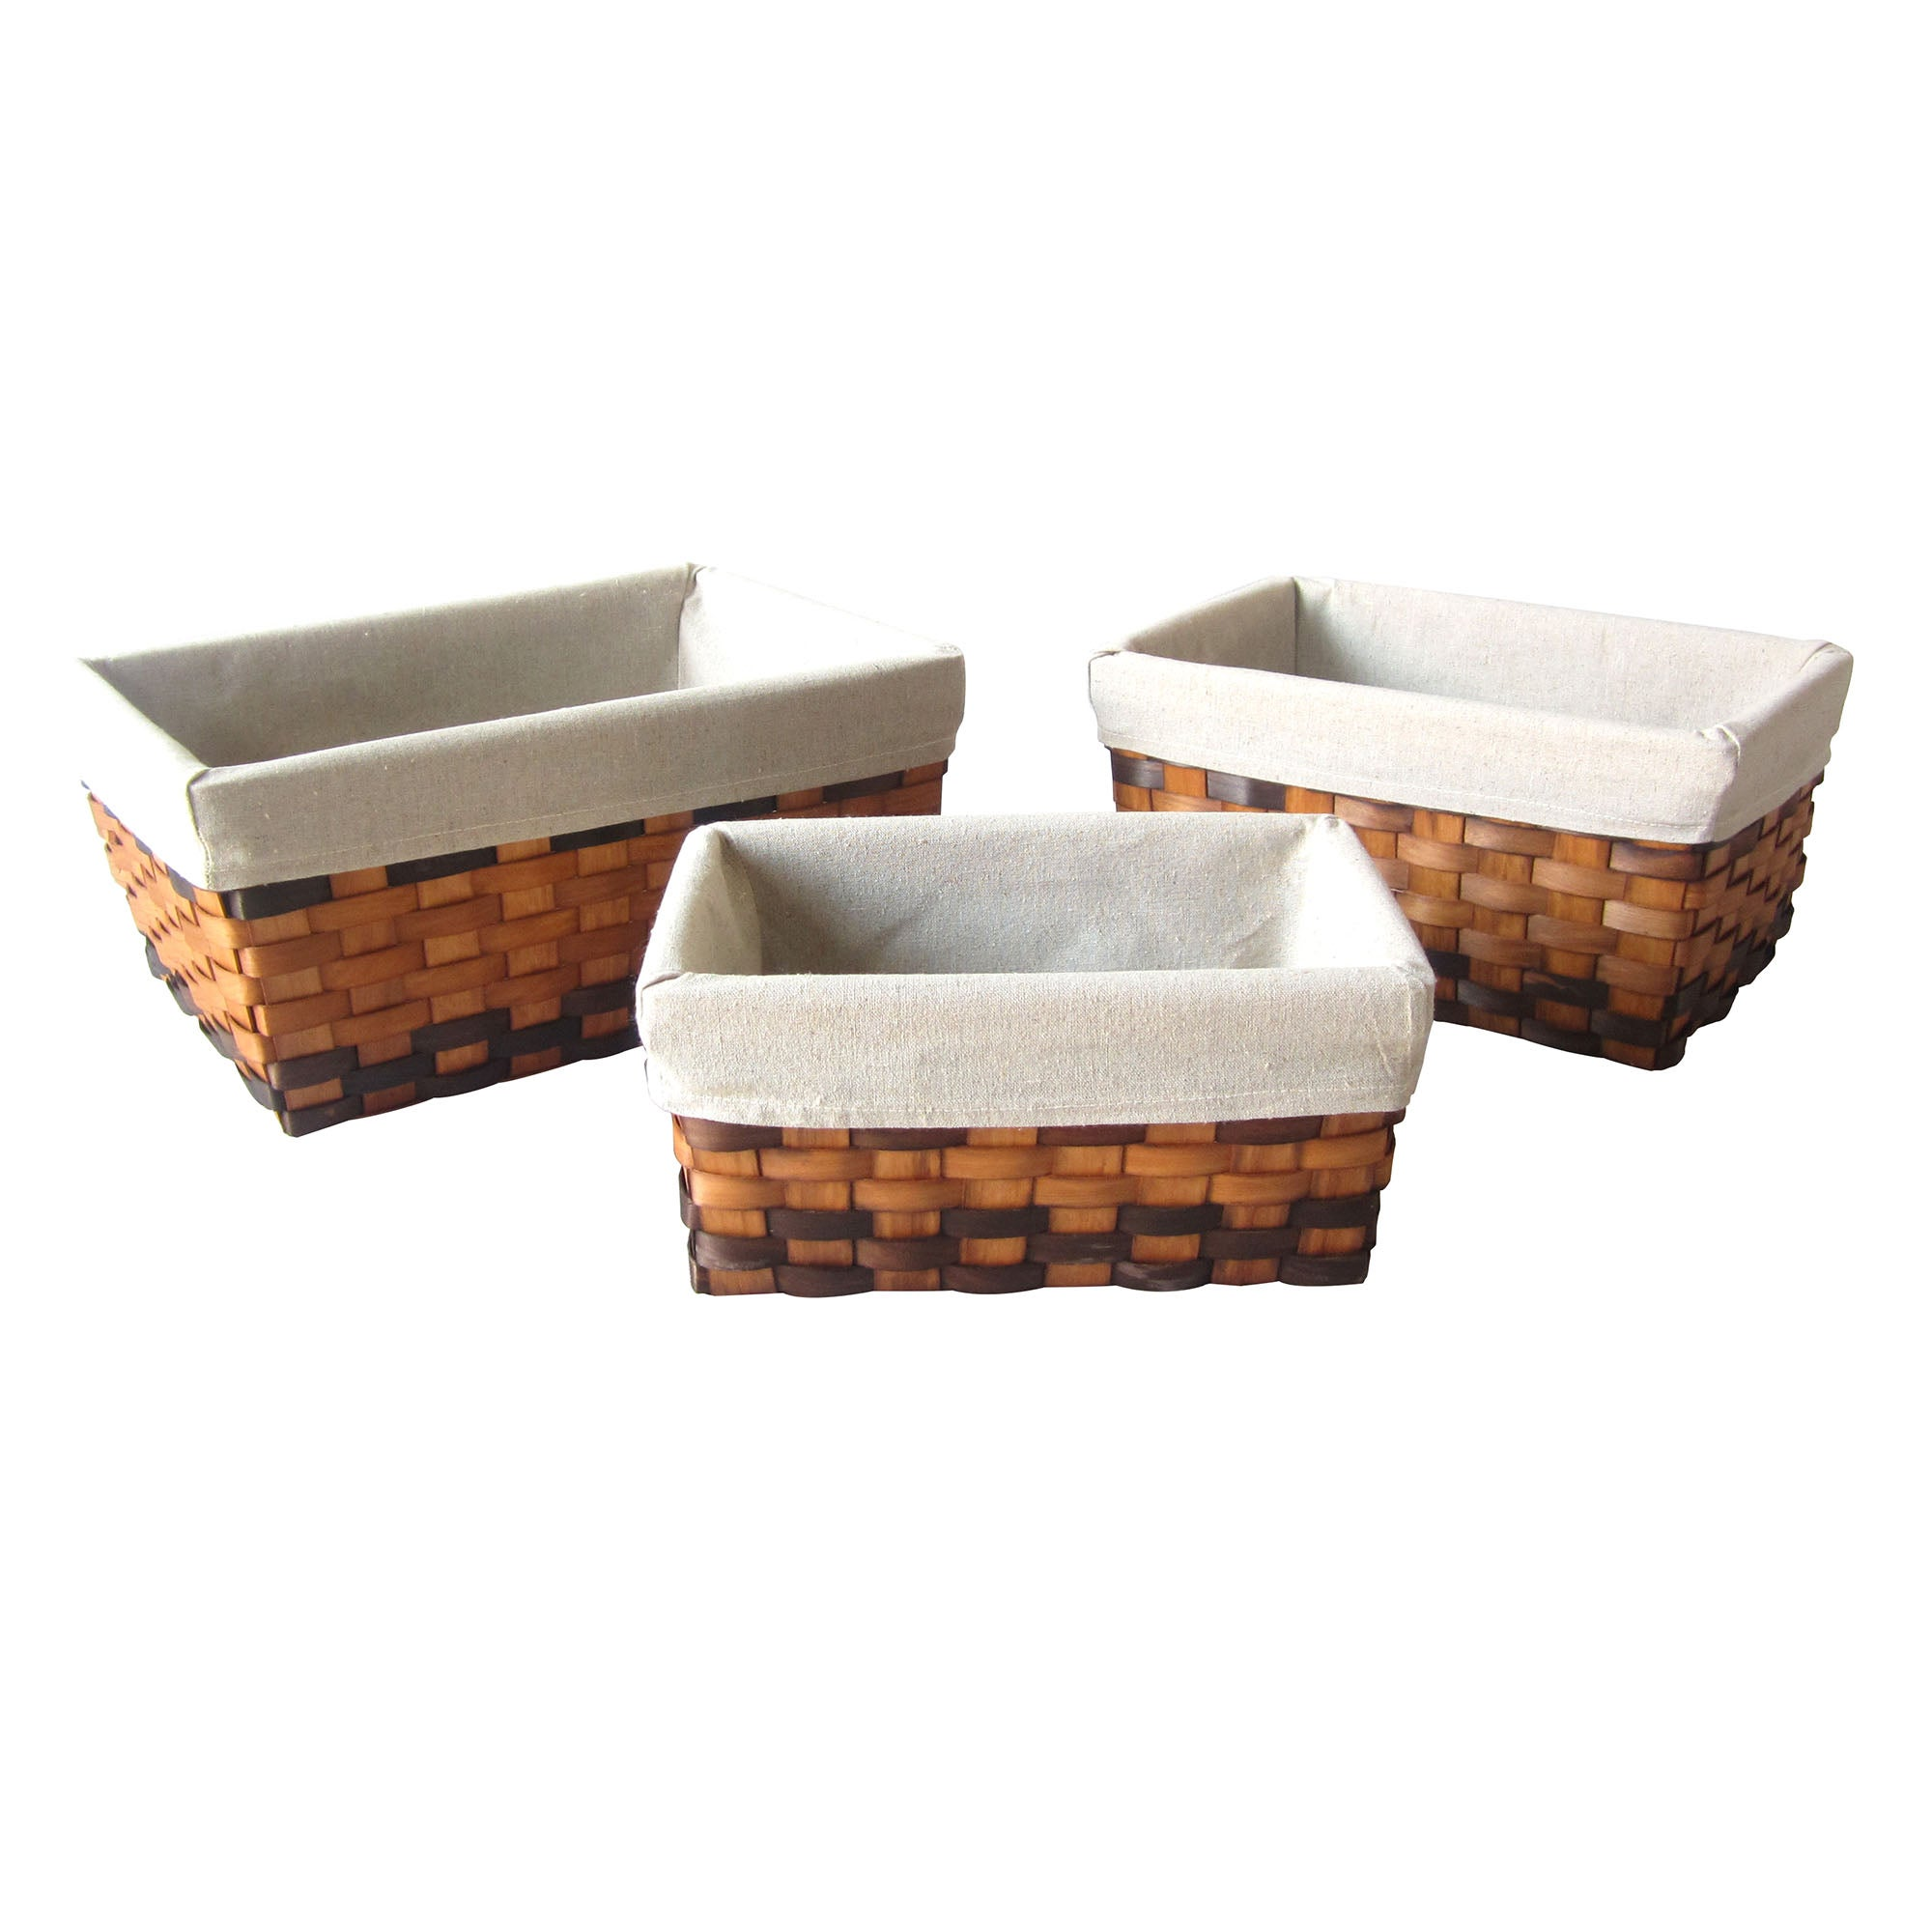 Honey Wood Set of 3 Baskets